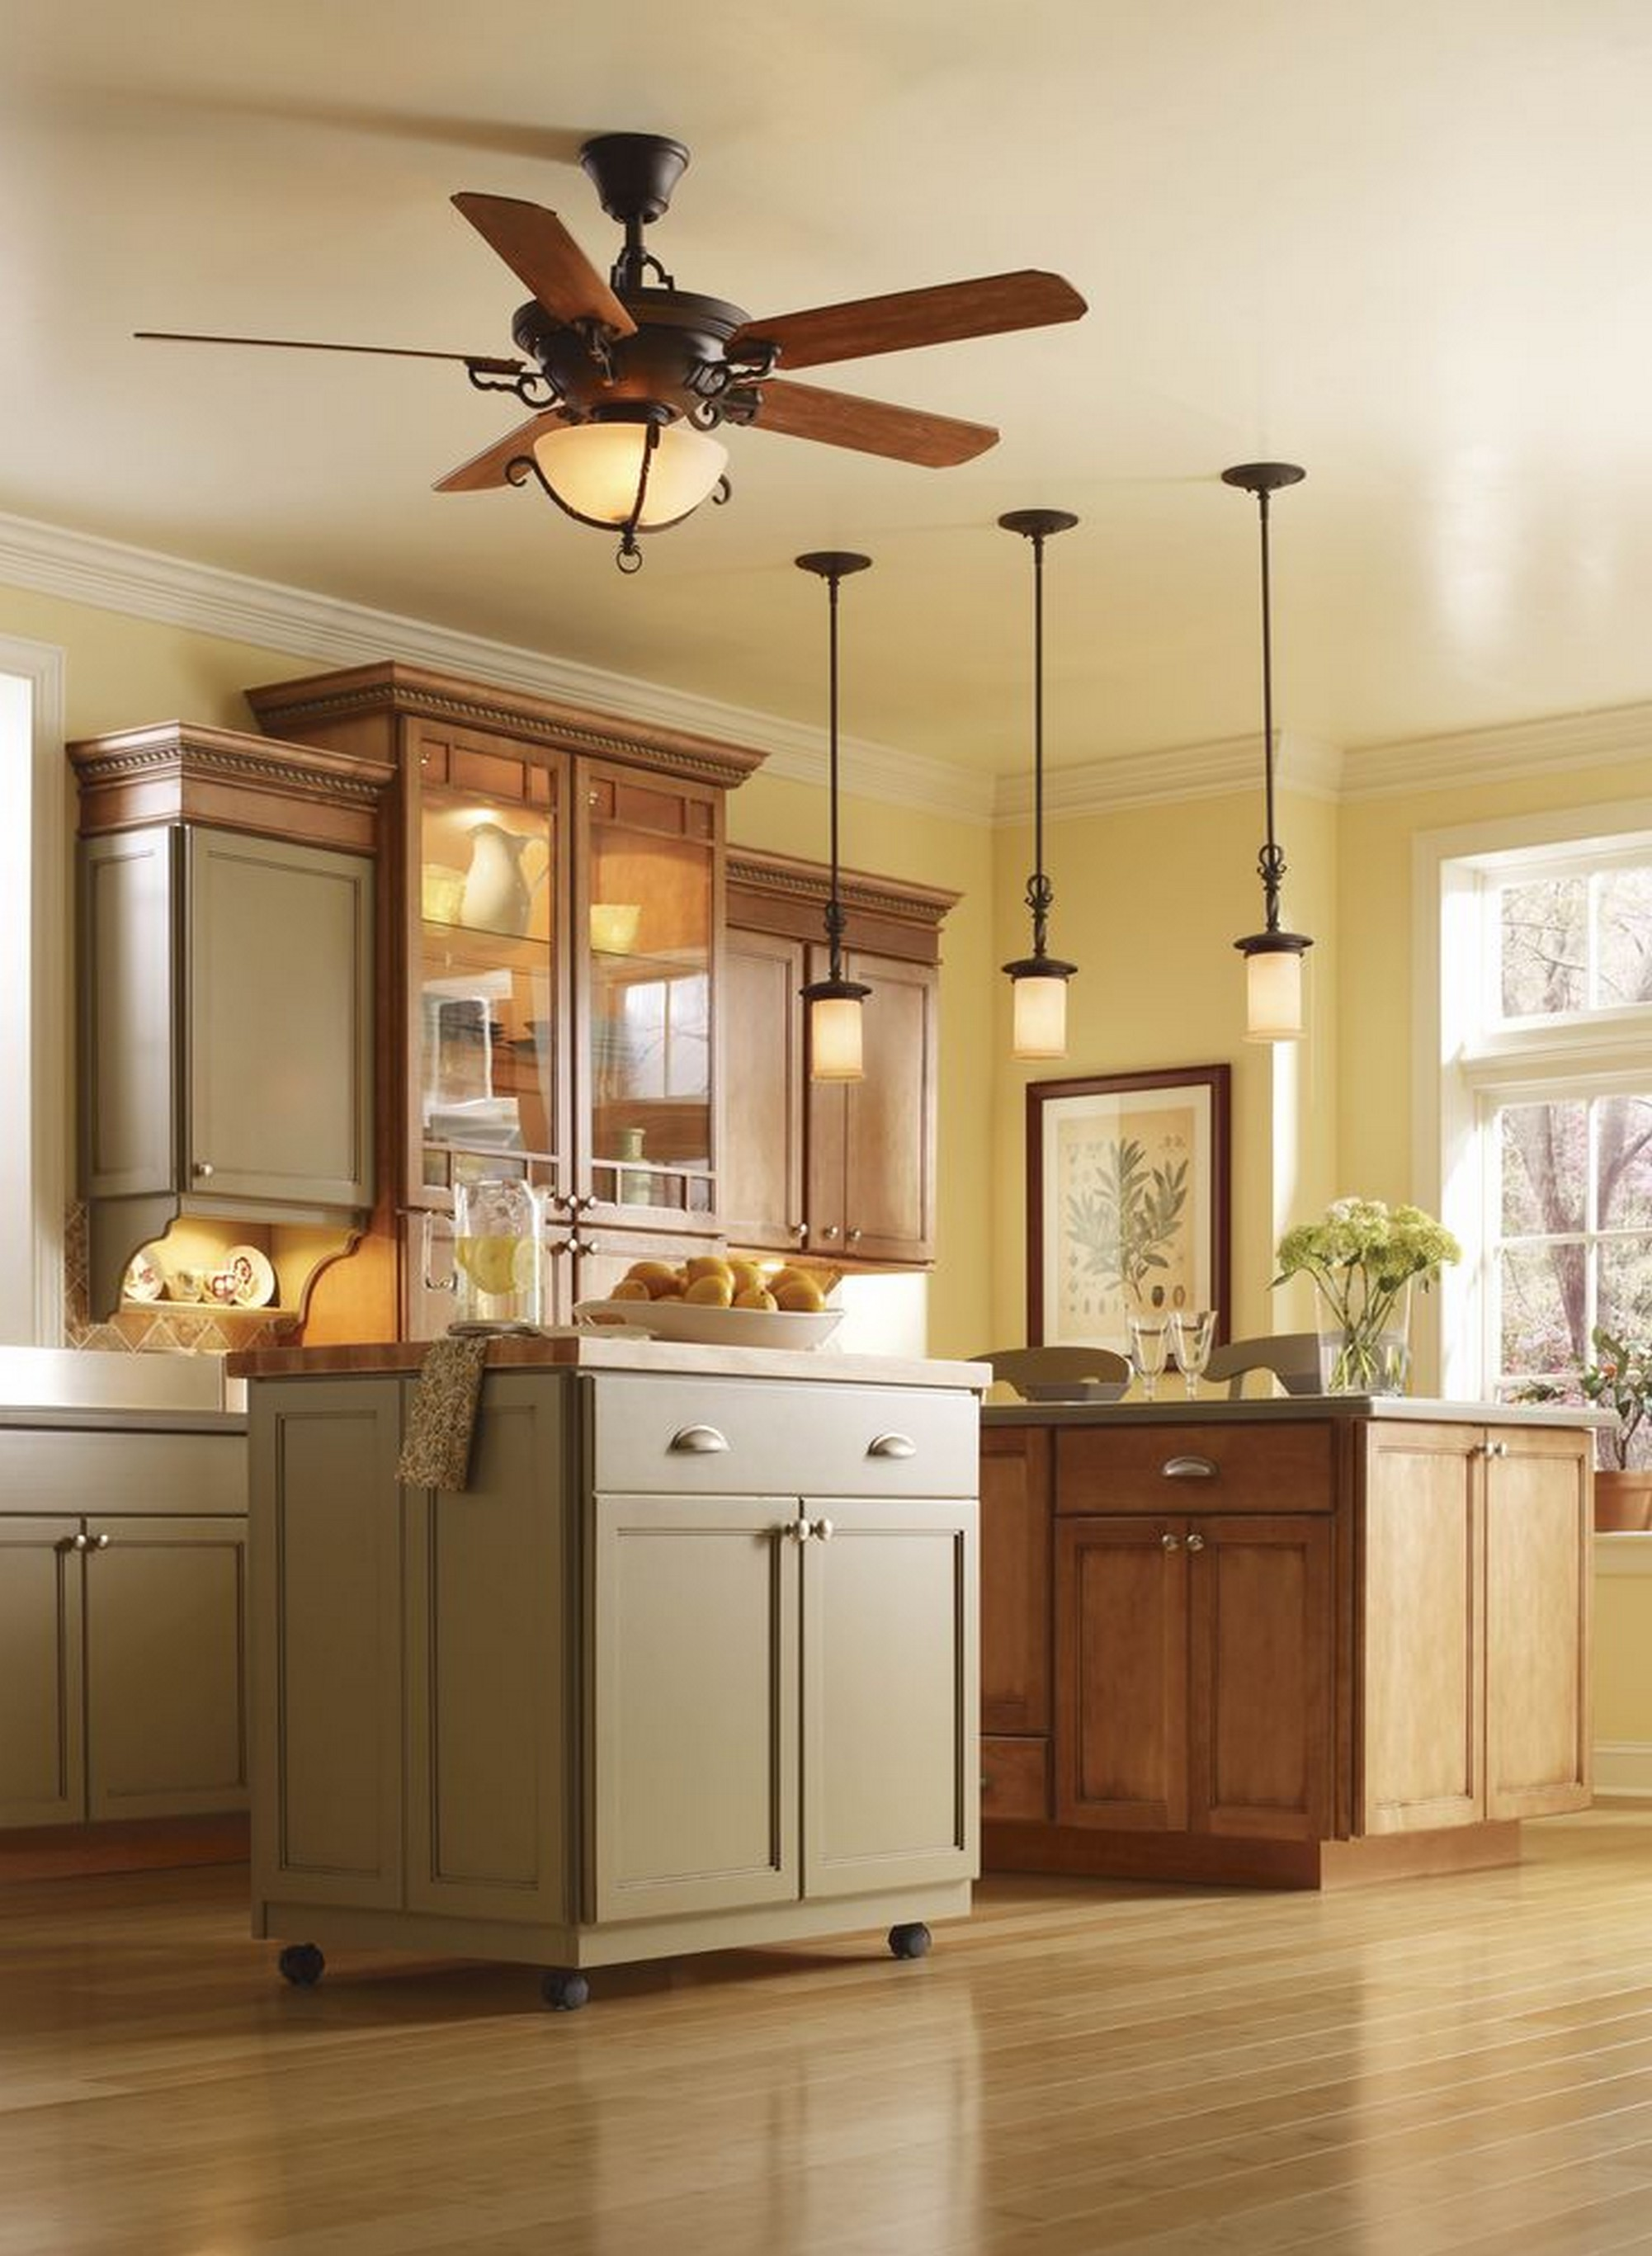 amazing Ceiling Fans For Kitchens With Light #2: Type of kitchen